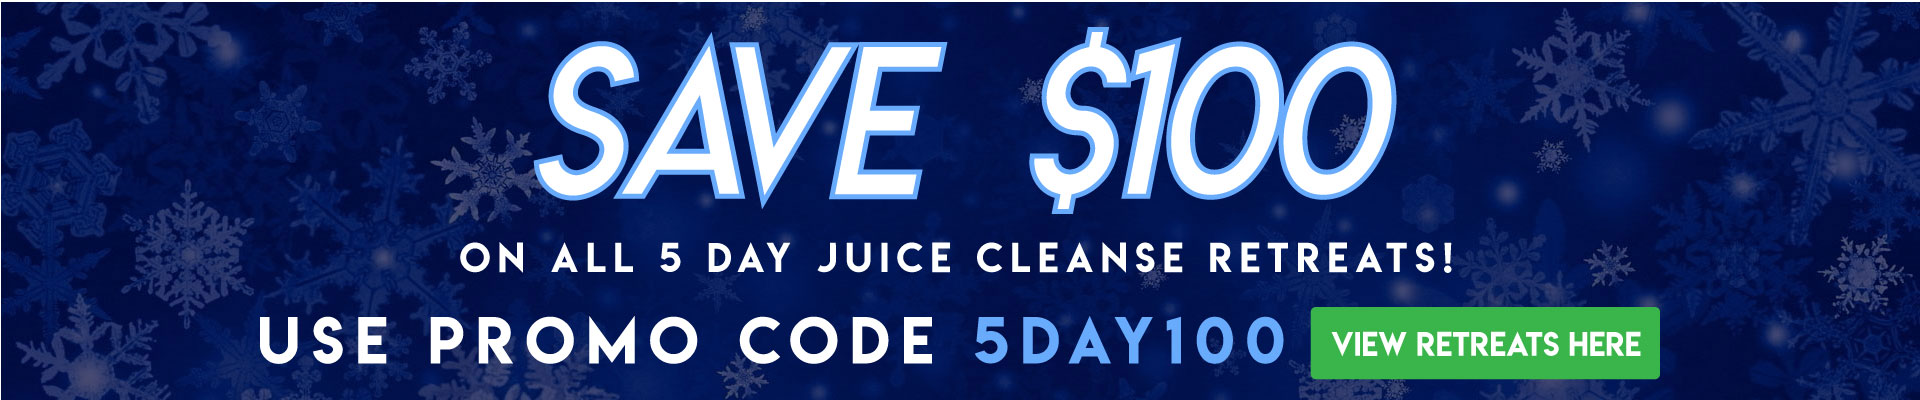 Save 100 on 5 day juice cleanse